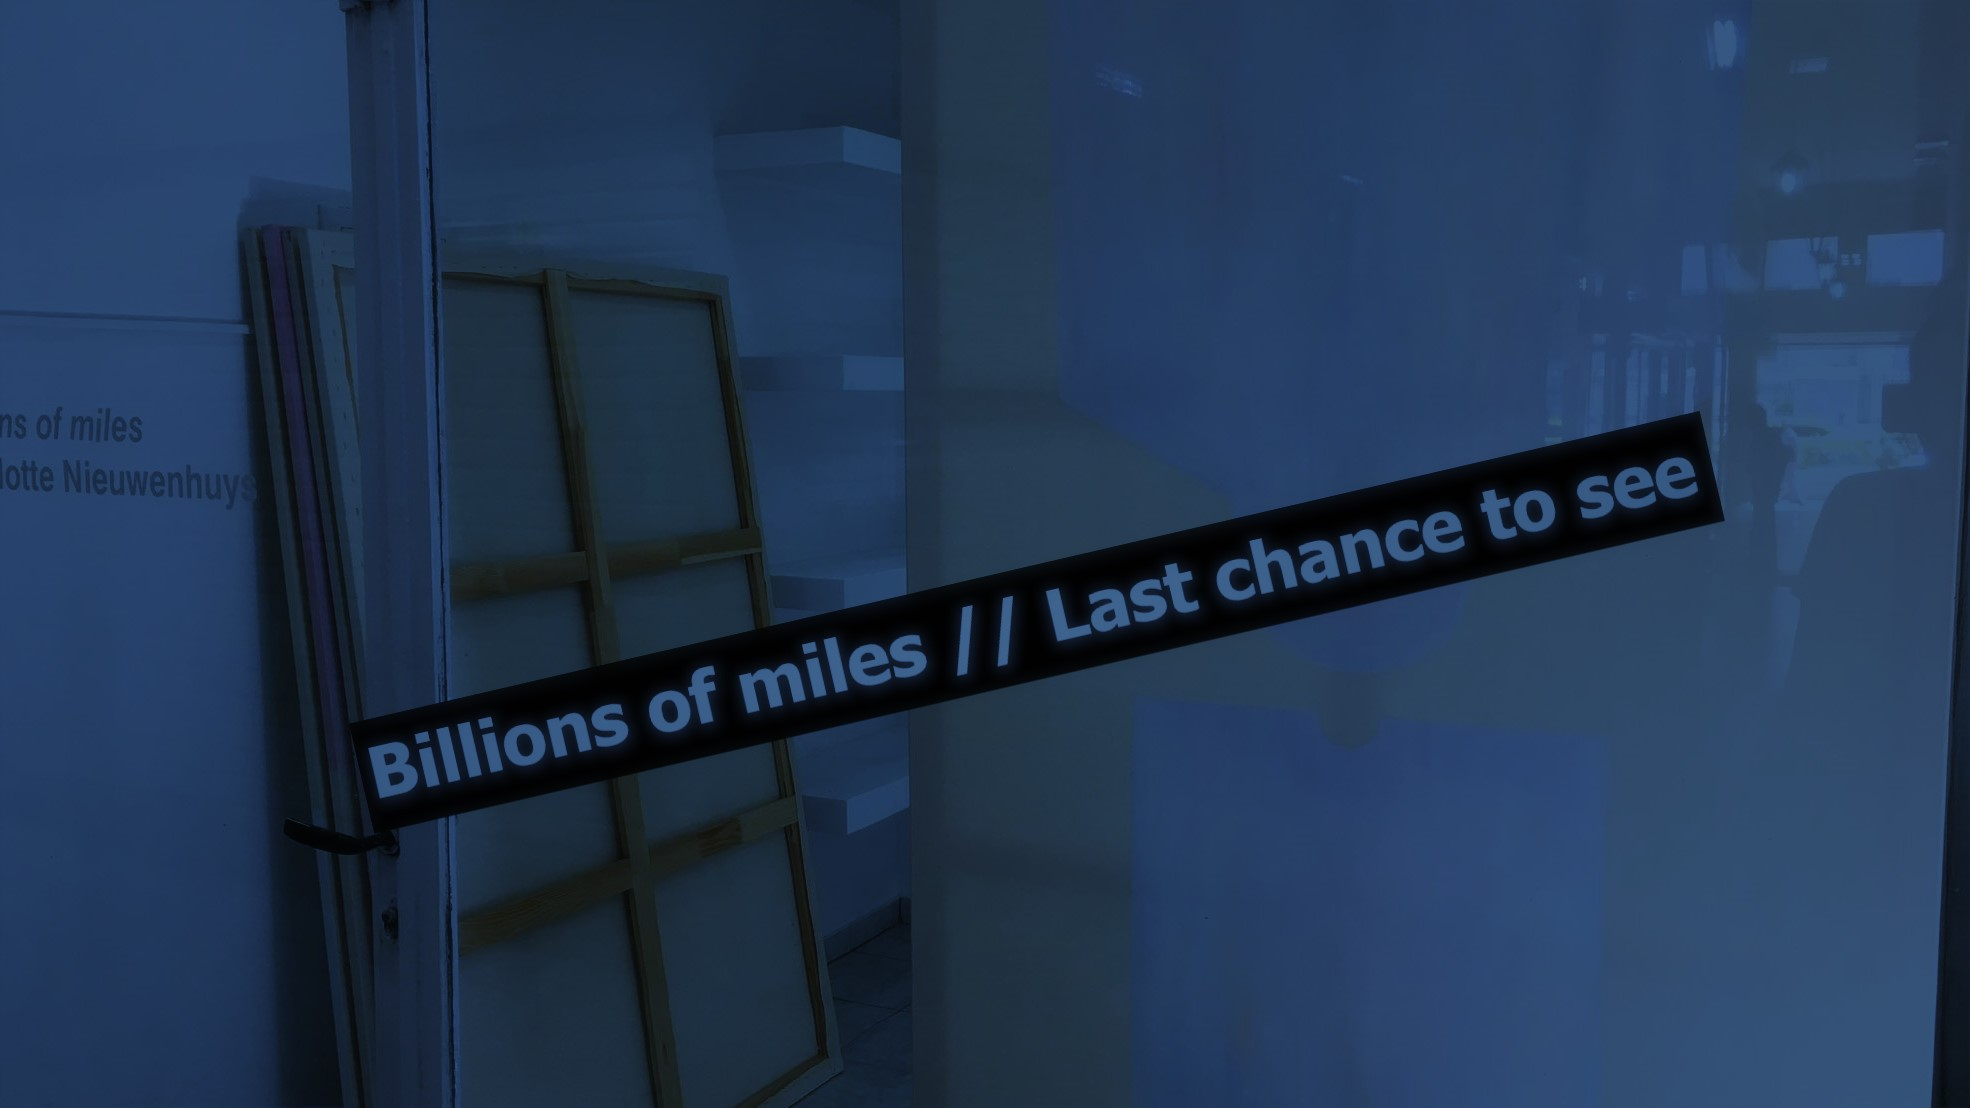 Billions of miles  // Last chance to see